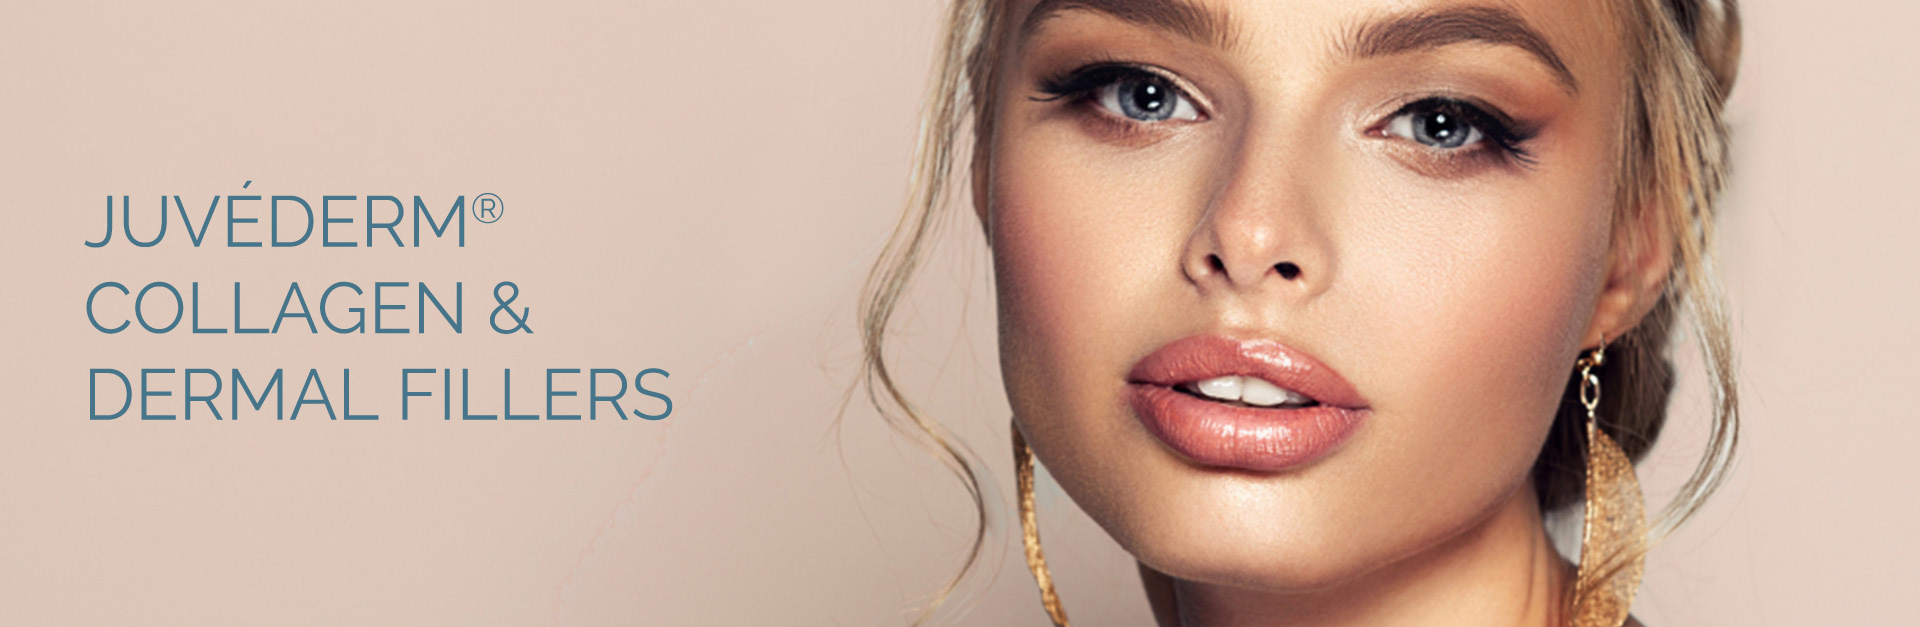 juvederm collagen and dermal fillers